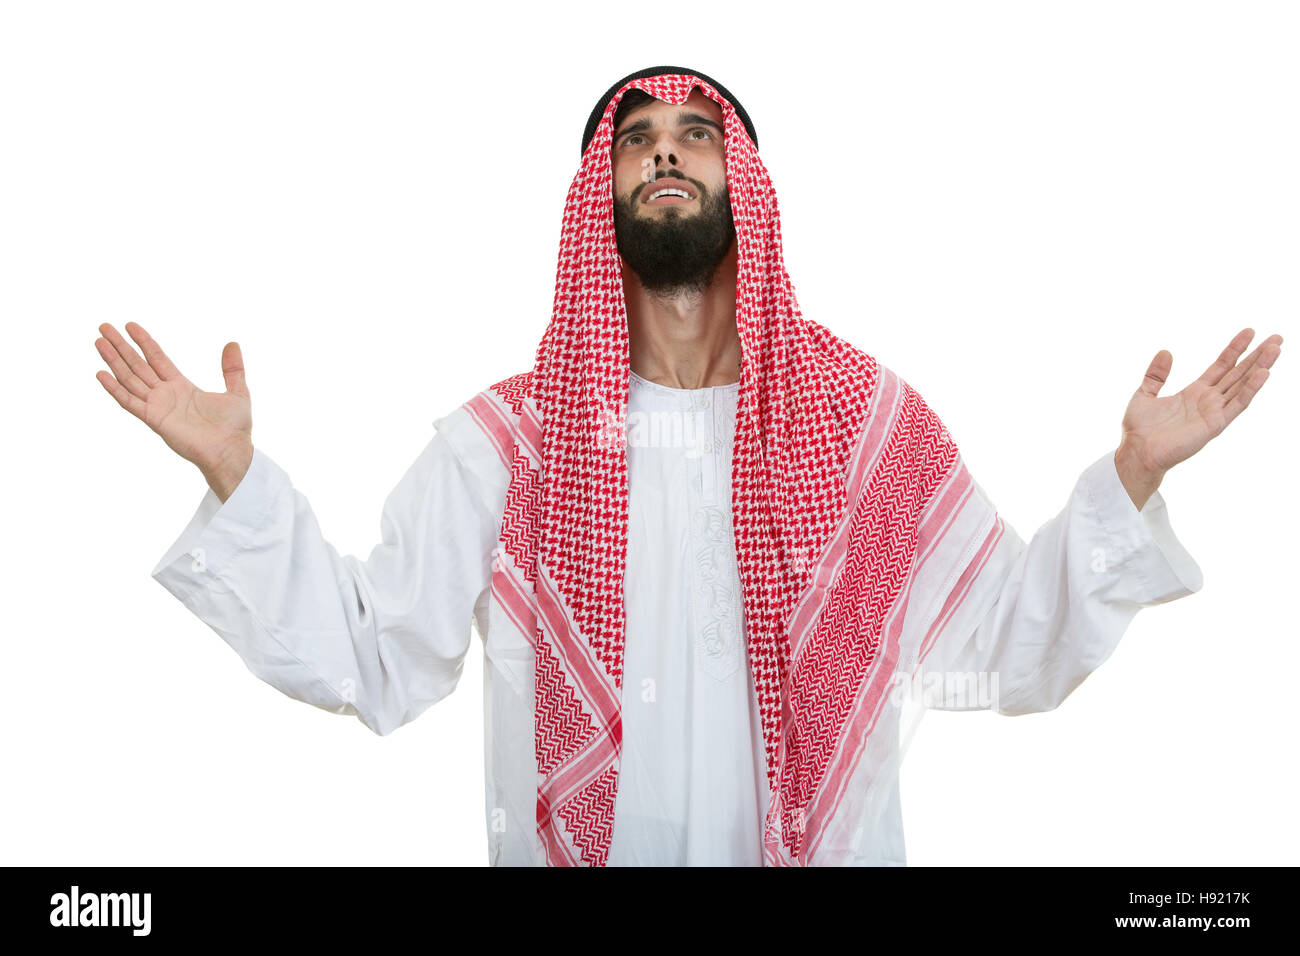 Young arab man of muslim religion praying isolated on white background - Stock Image